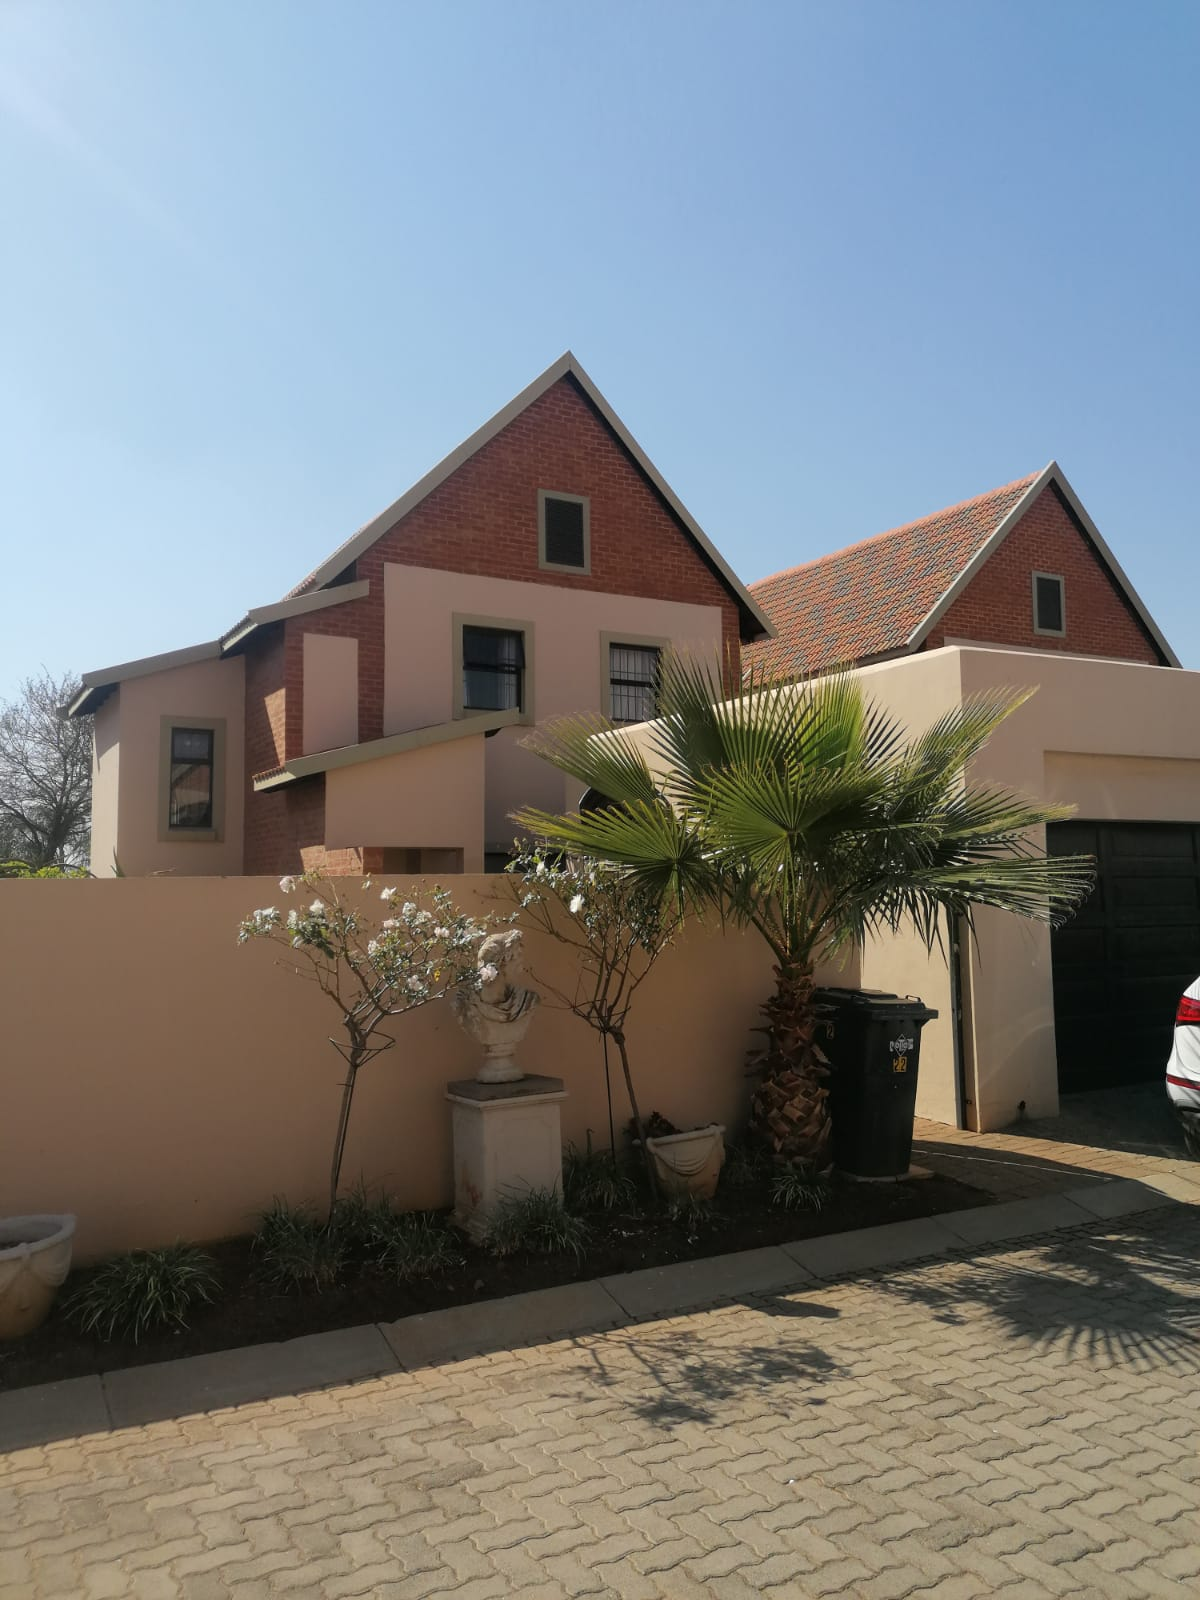 Houses and Townhouses for sale in Pretoria